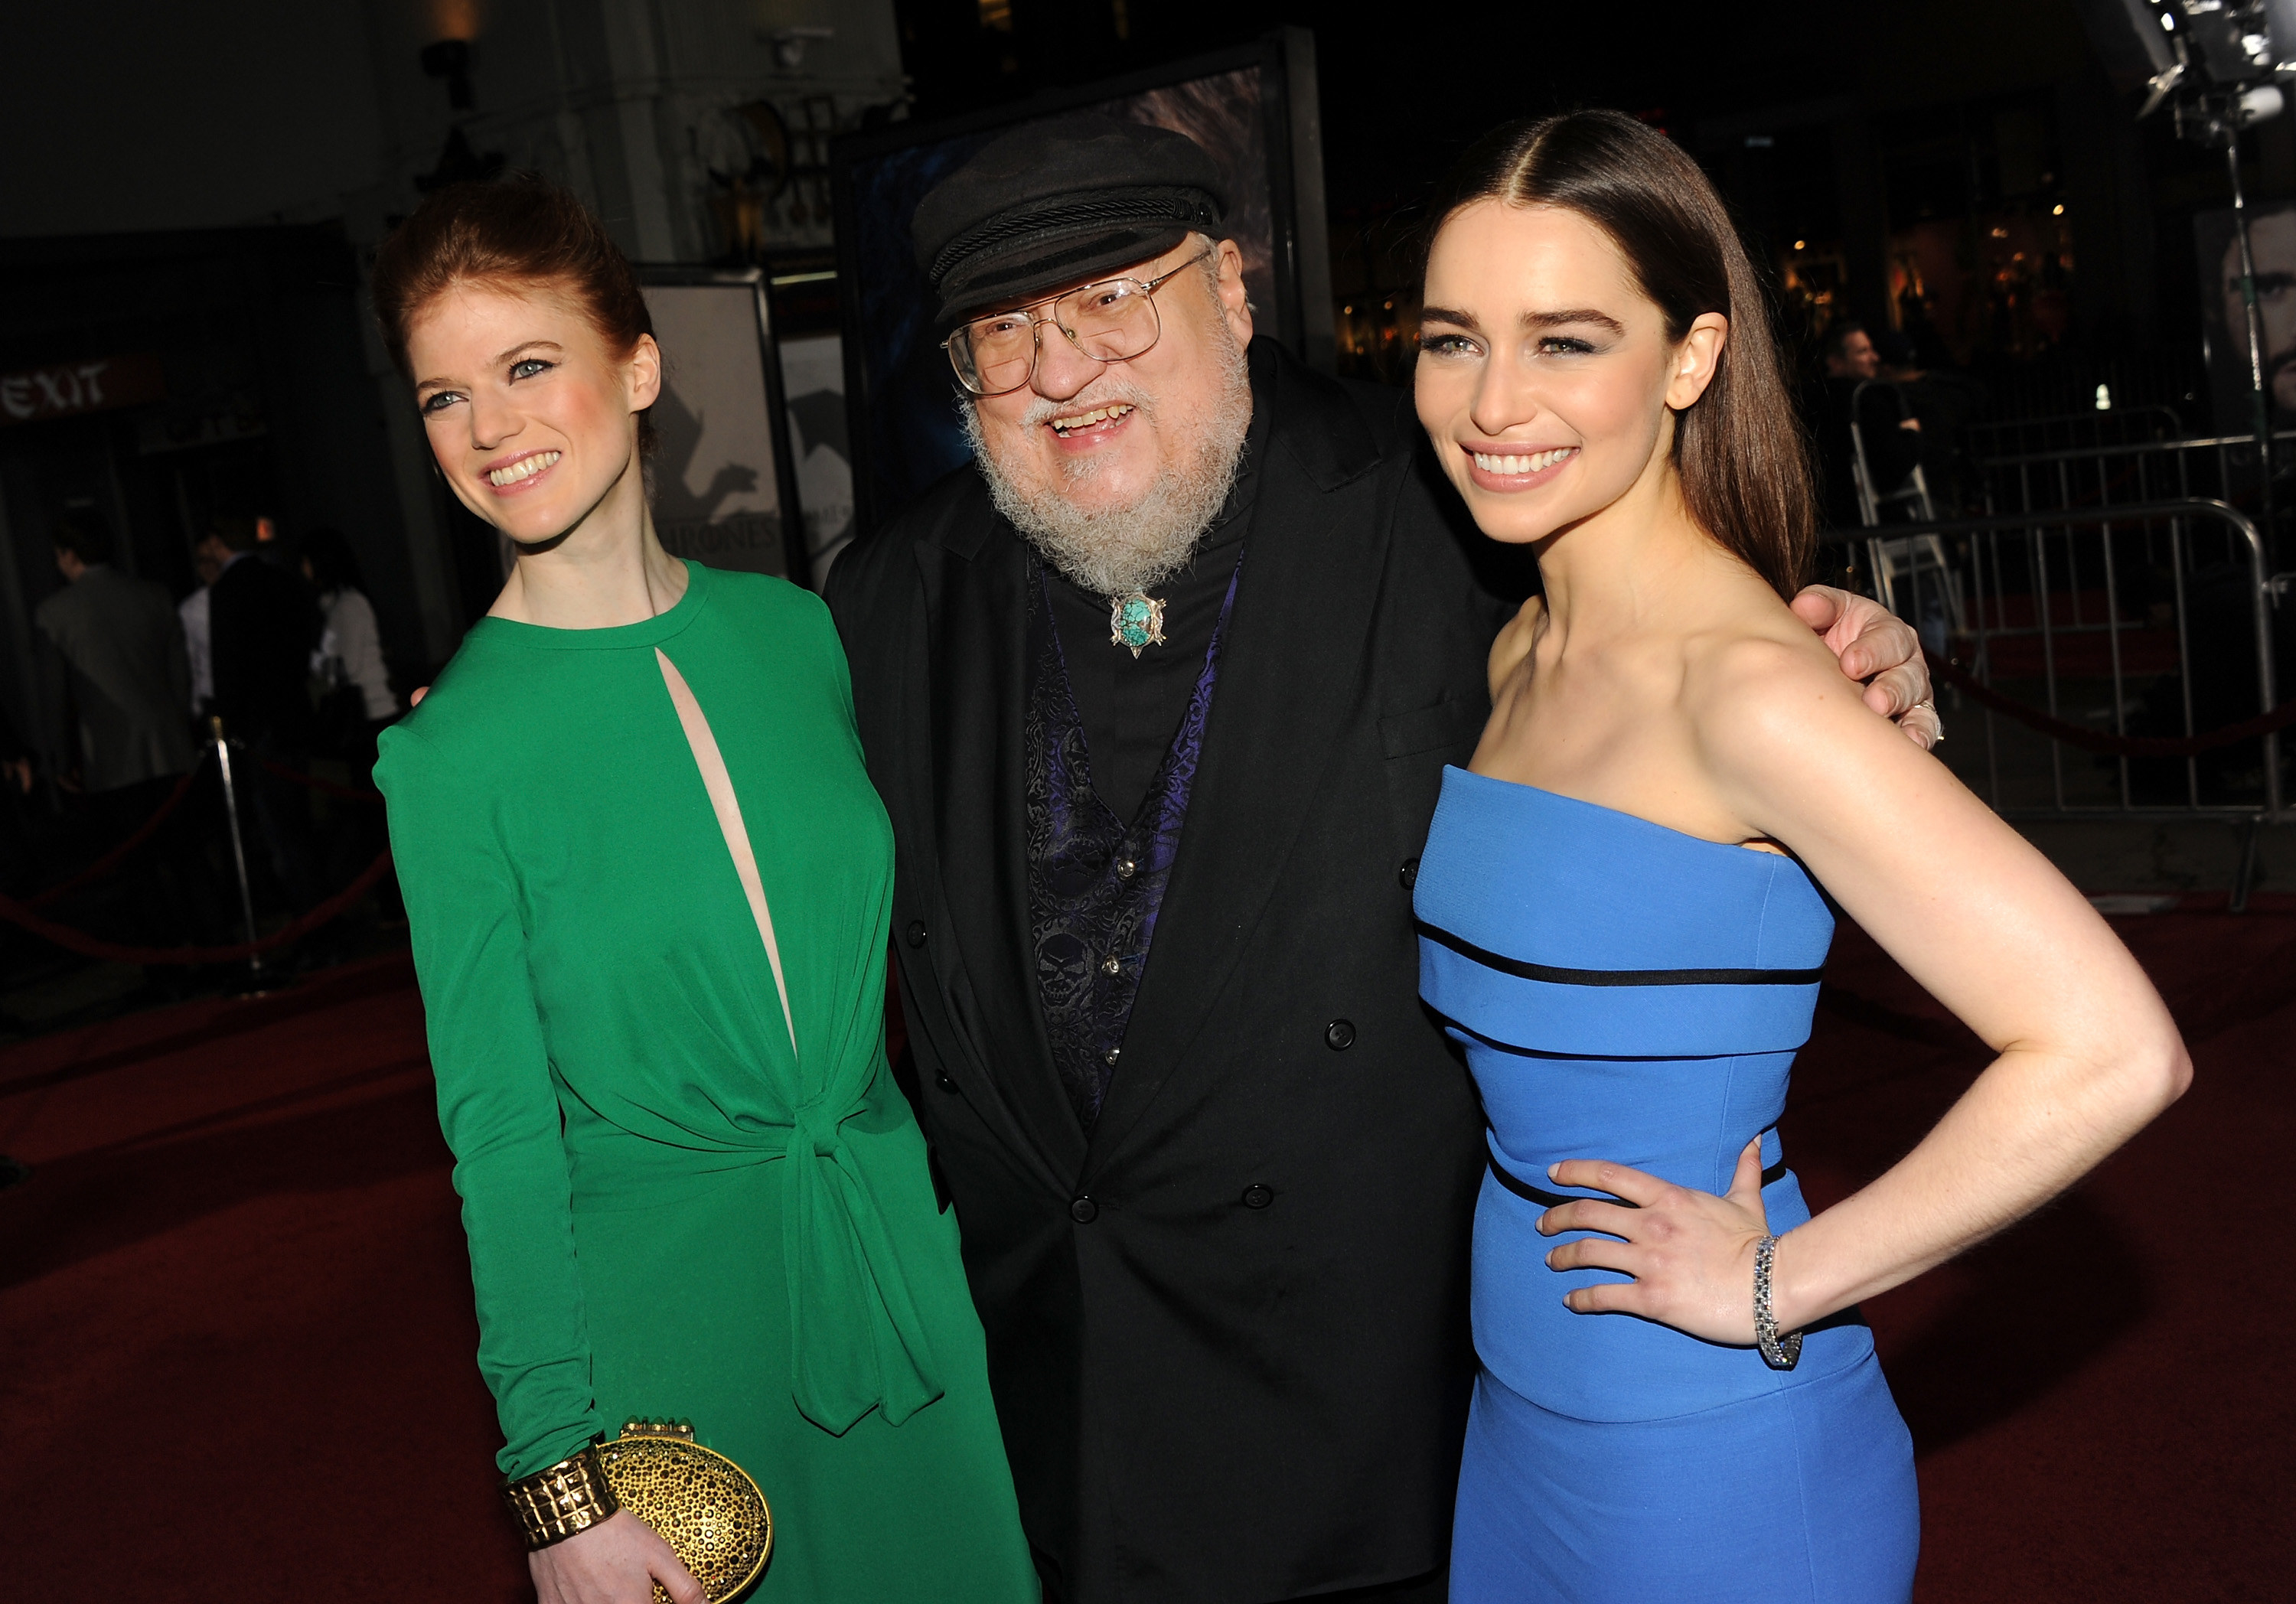 George stands with Game of Thrones actors Rose Leslie and Emilia Clarke